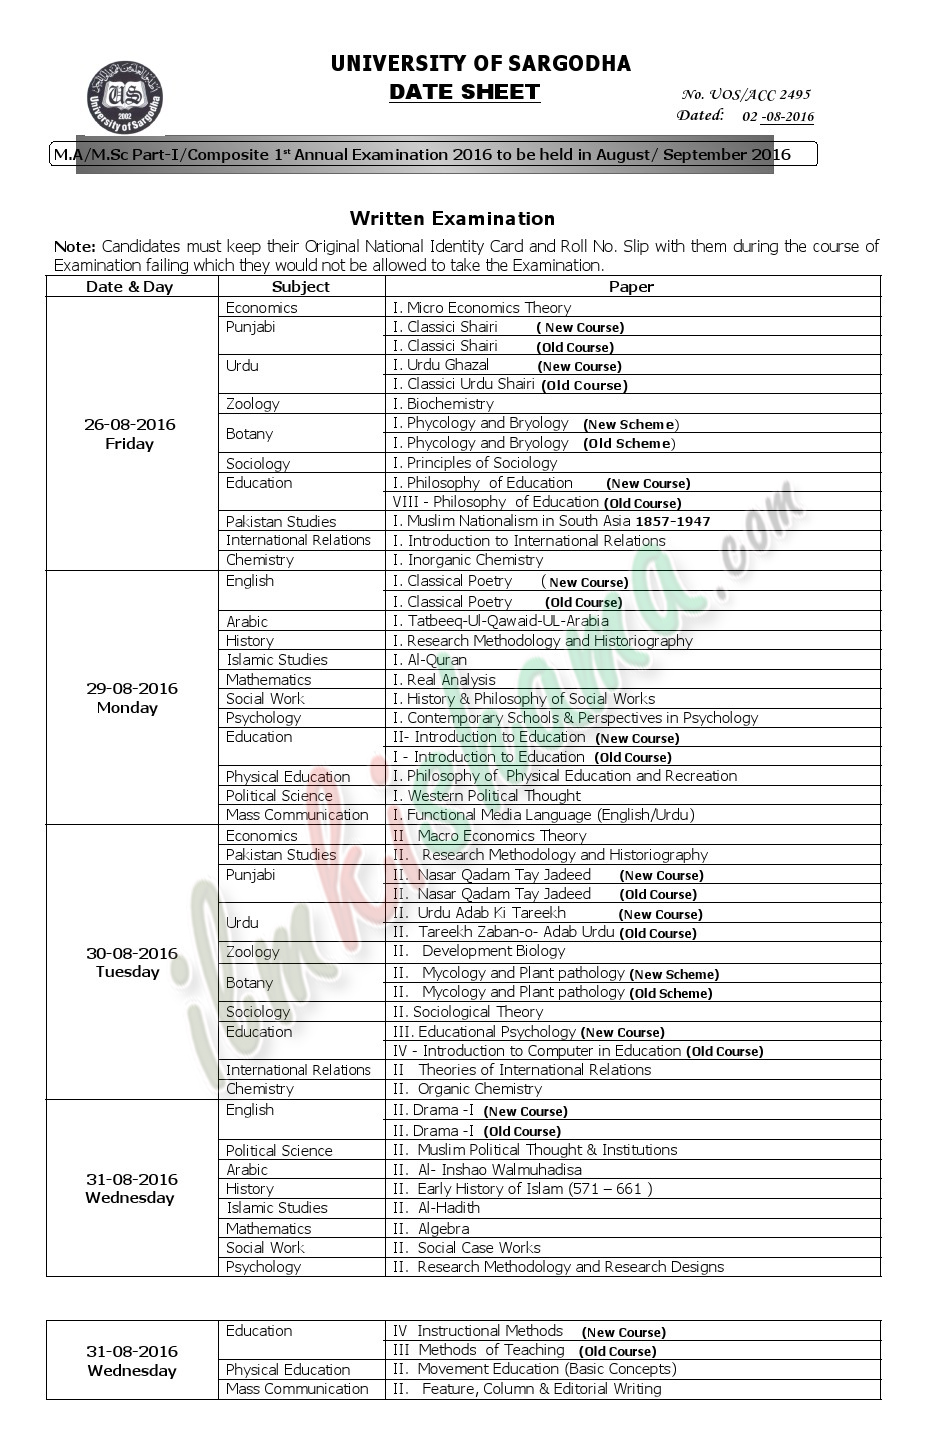 Date Sheet M.AM.Sc Part-I saragodha university 2016 1